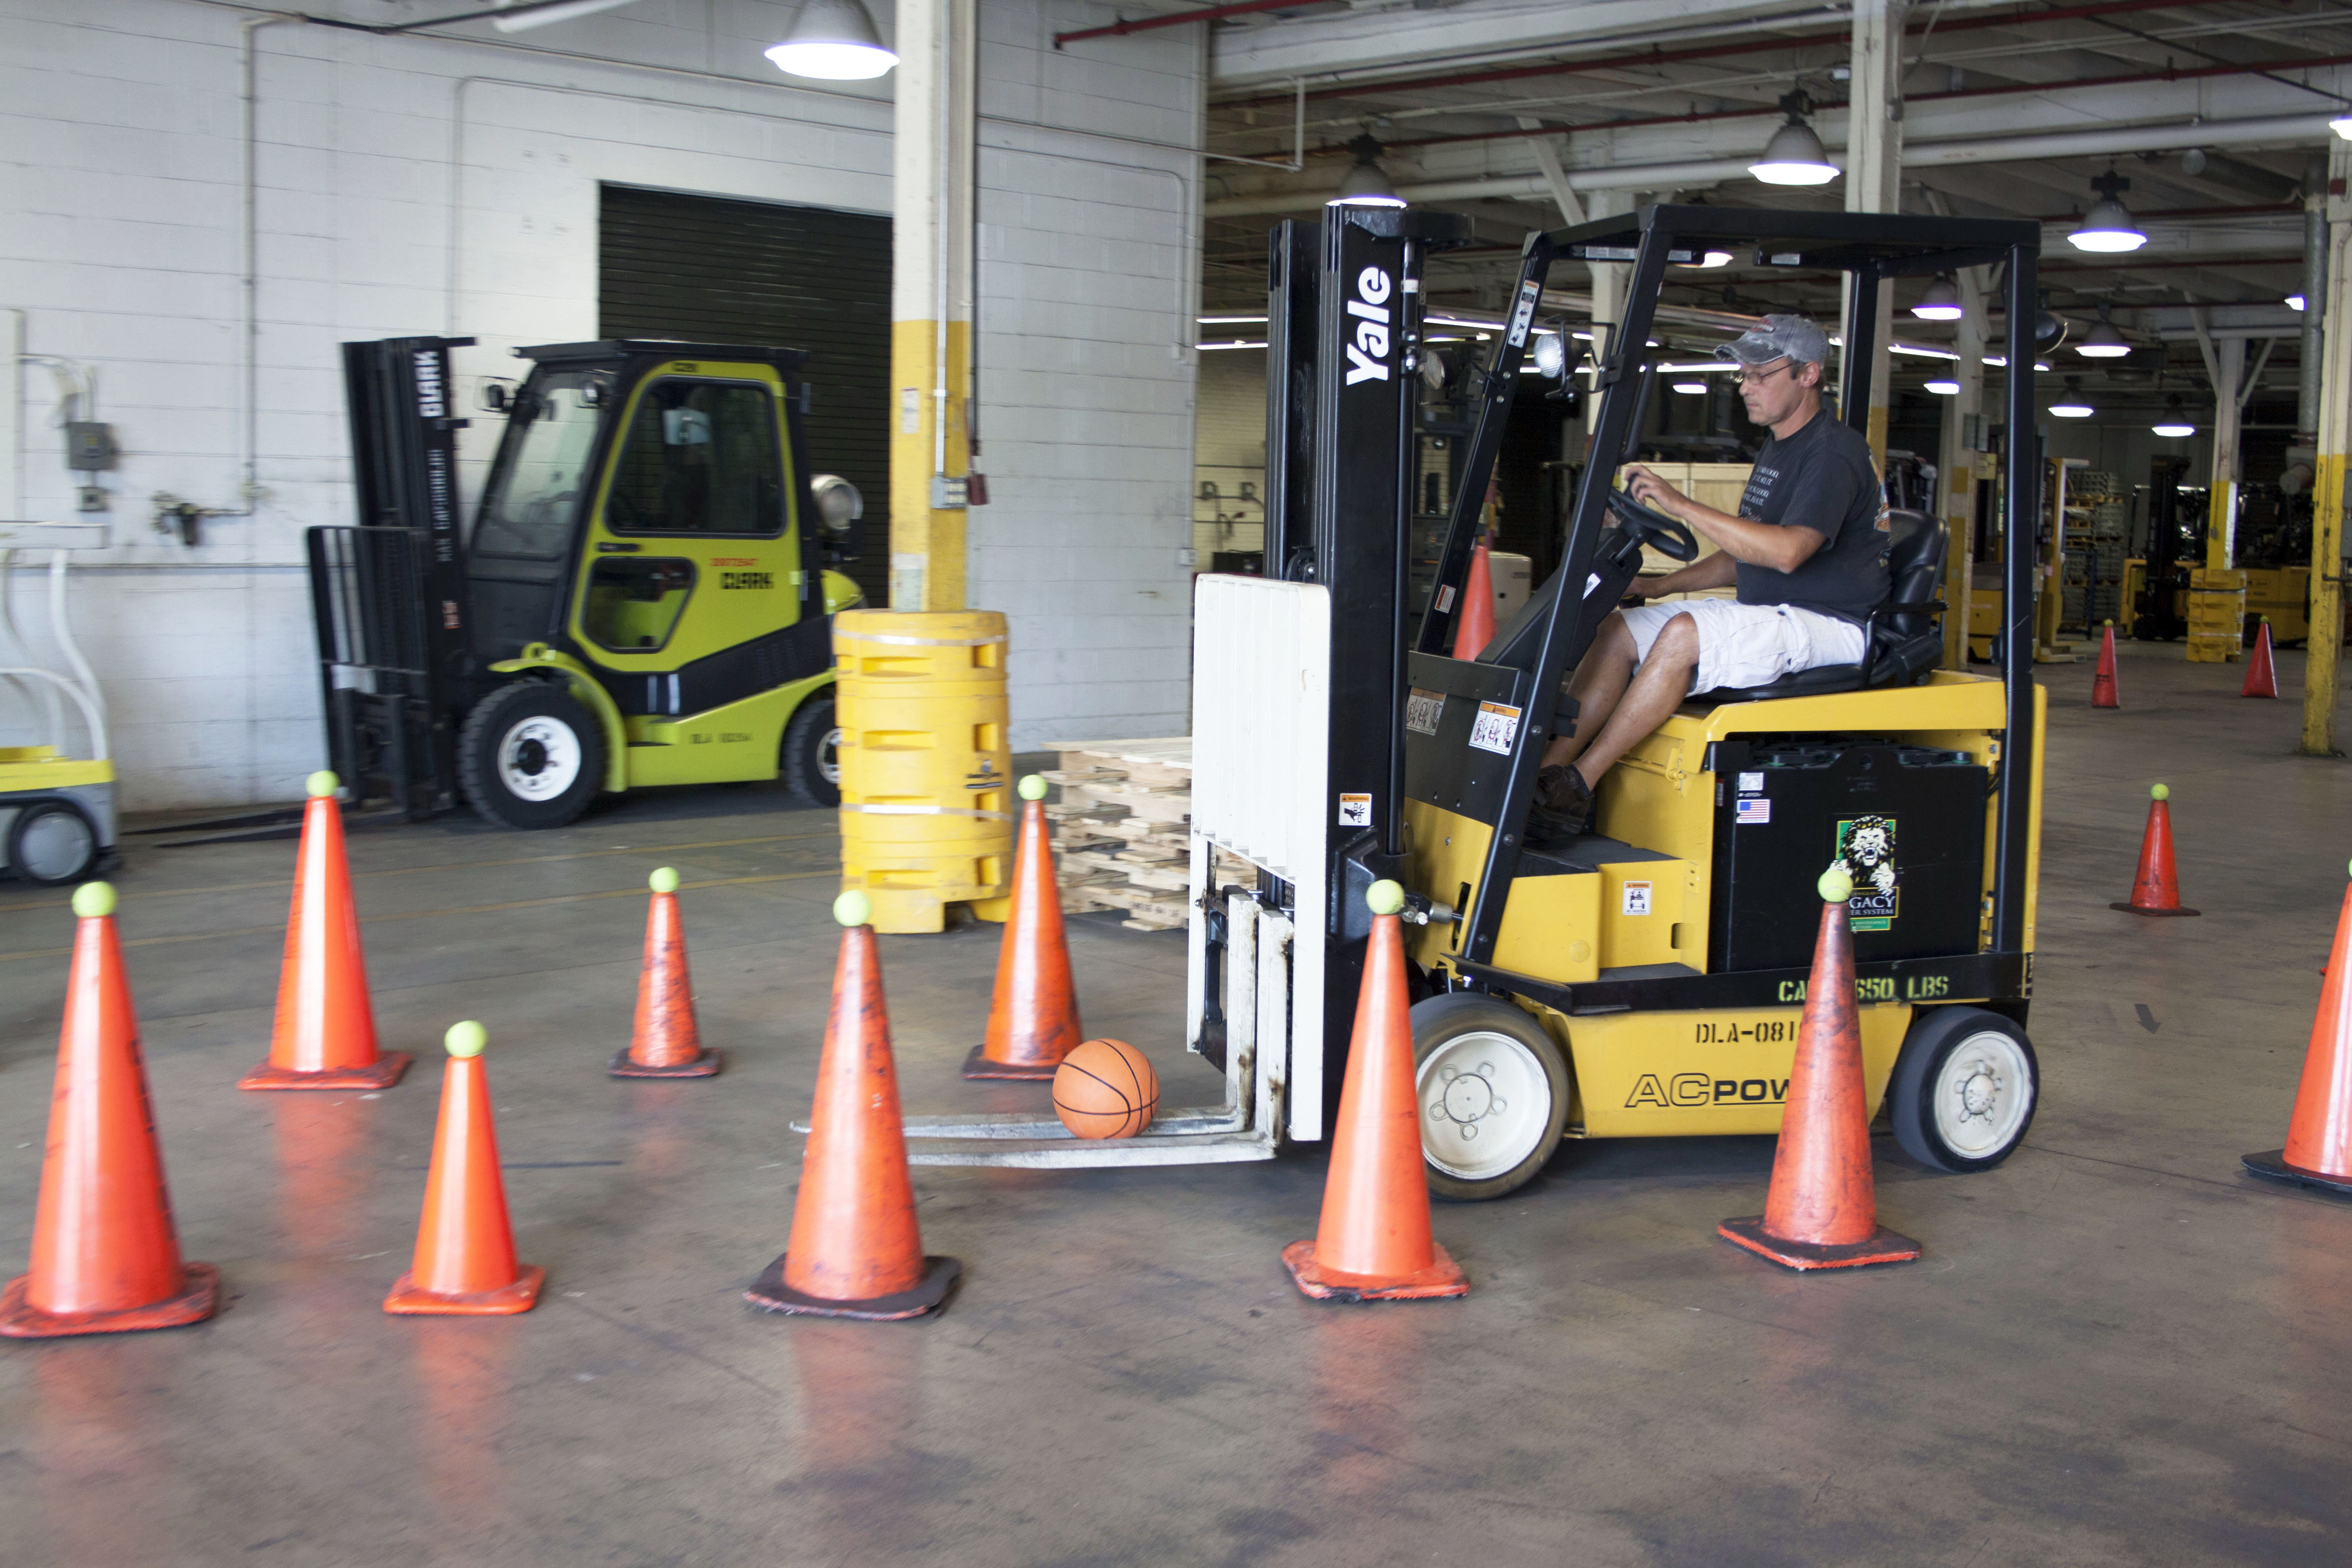 susquehanna employees support vpp demonstrate safety skills in photo details